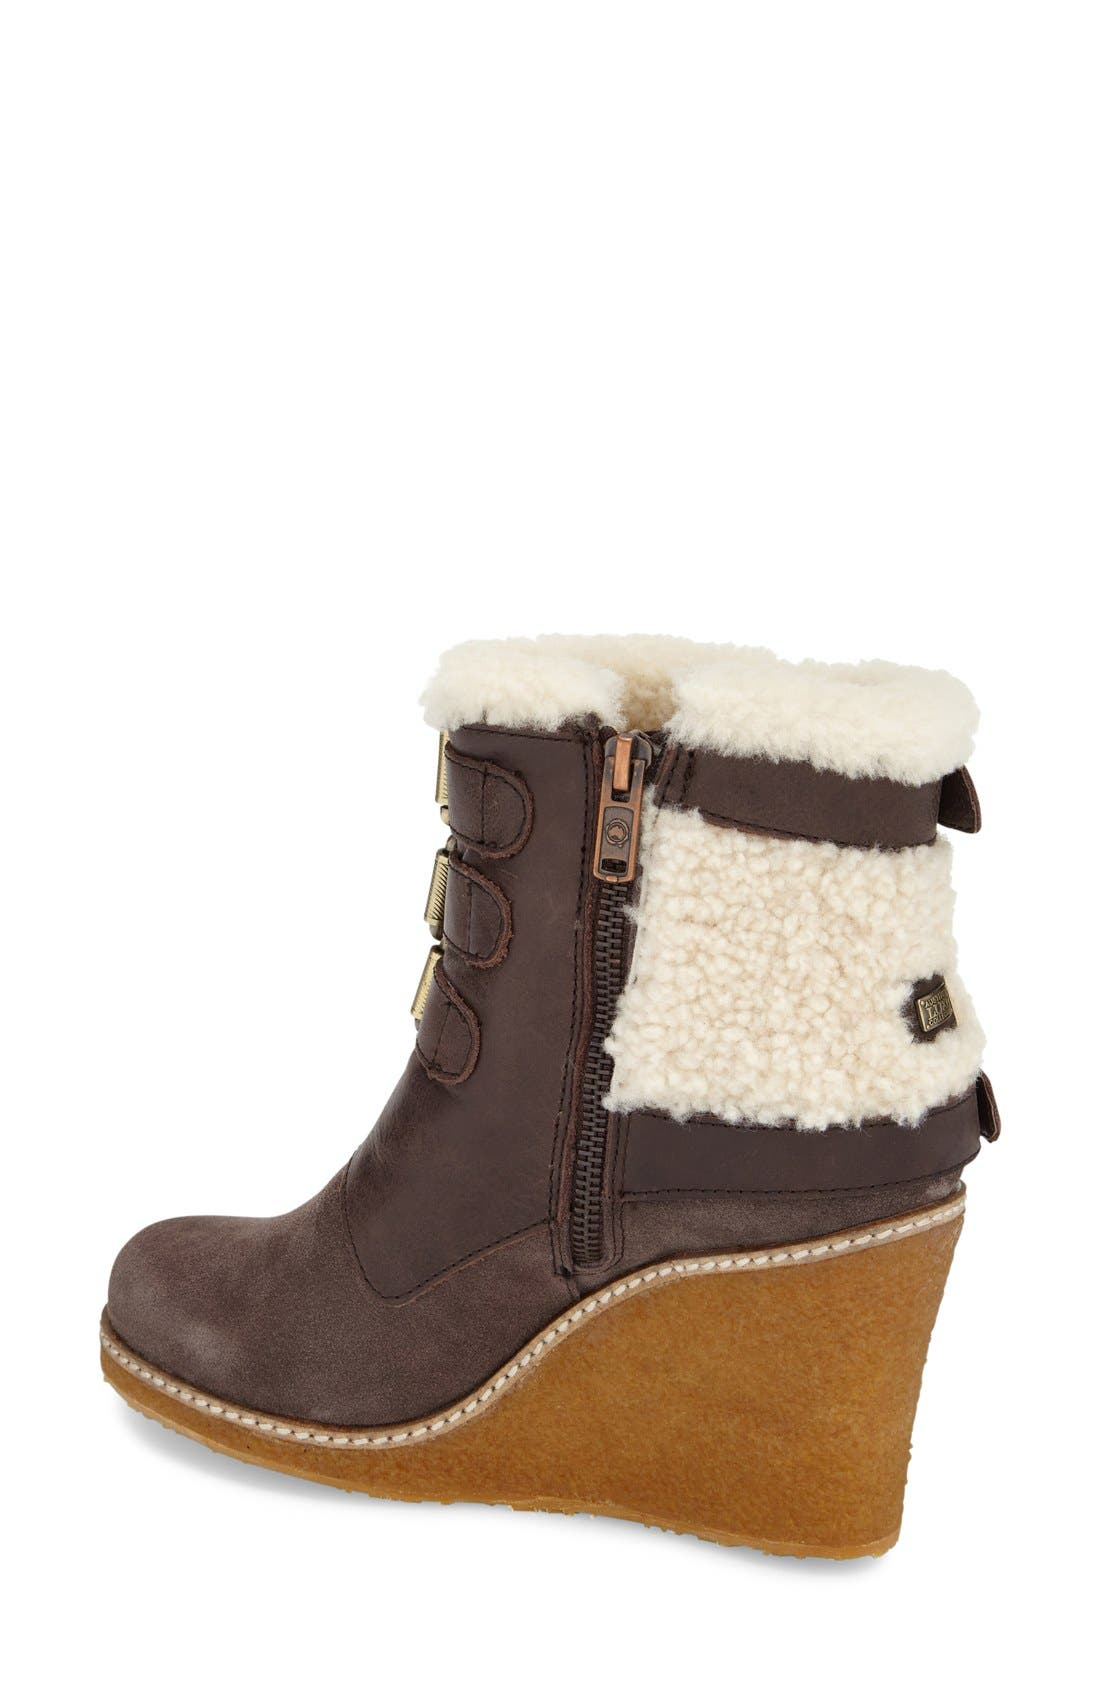 Alternate Image 2  - Australia Luxe Collective 'Monk' Genuine Calf Hair & Shearling Boot (Women)